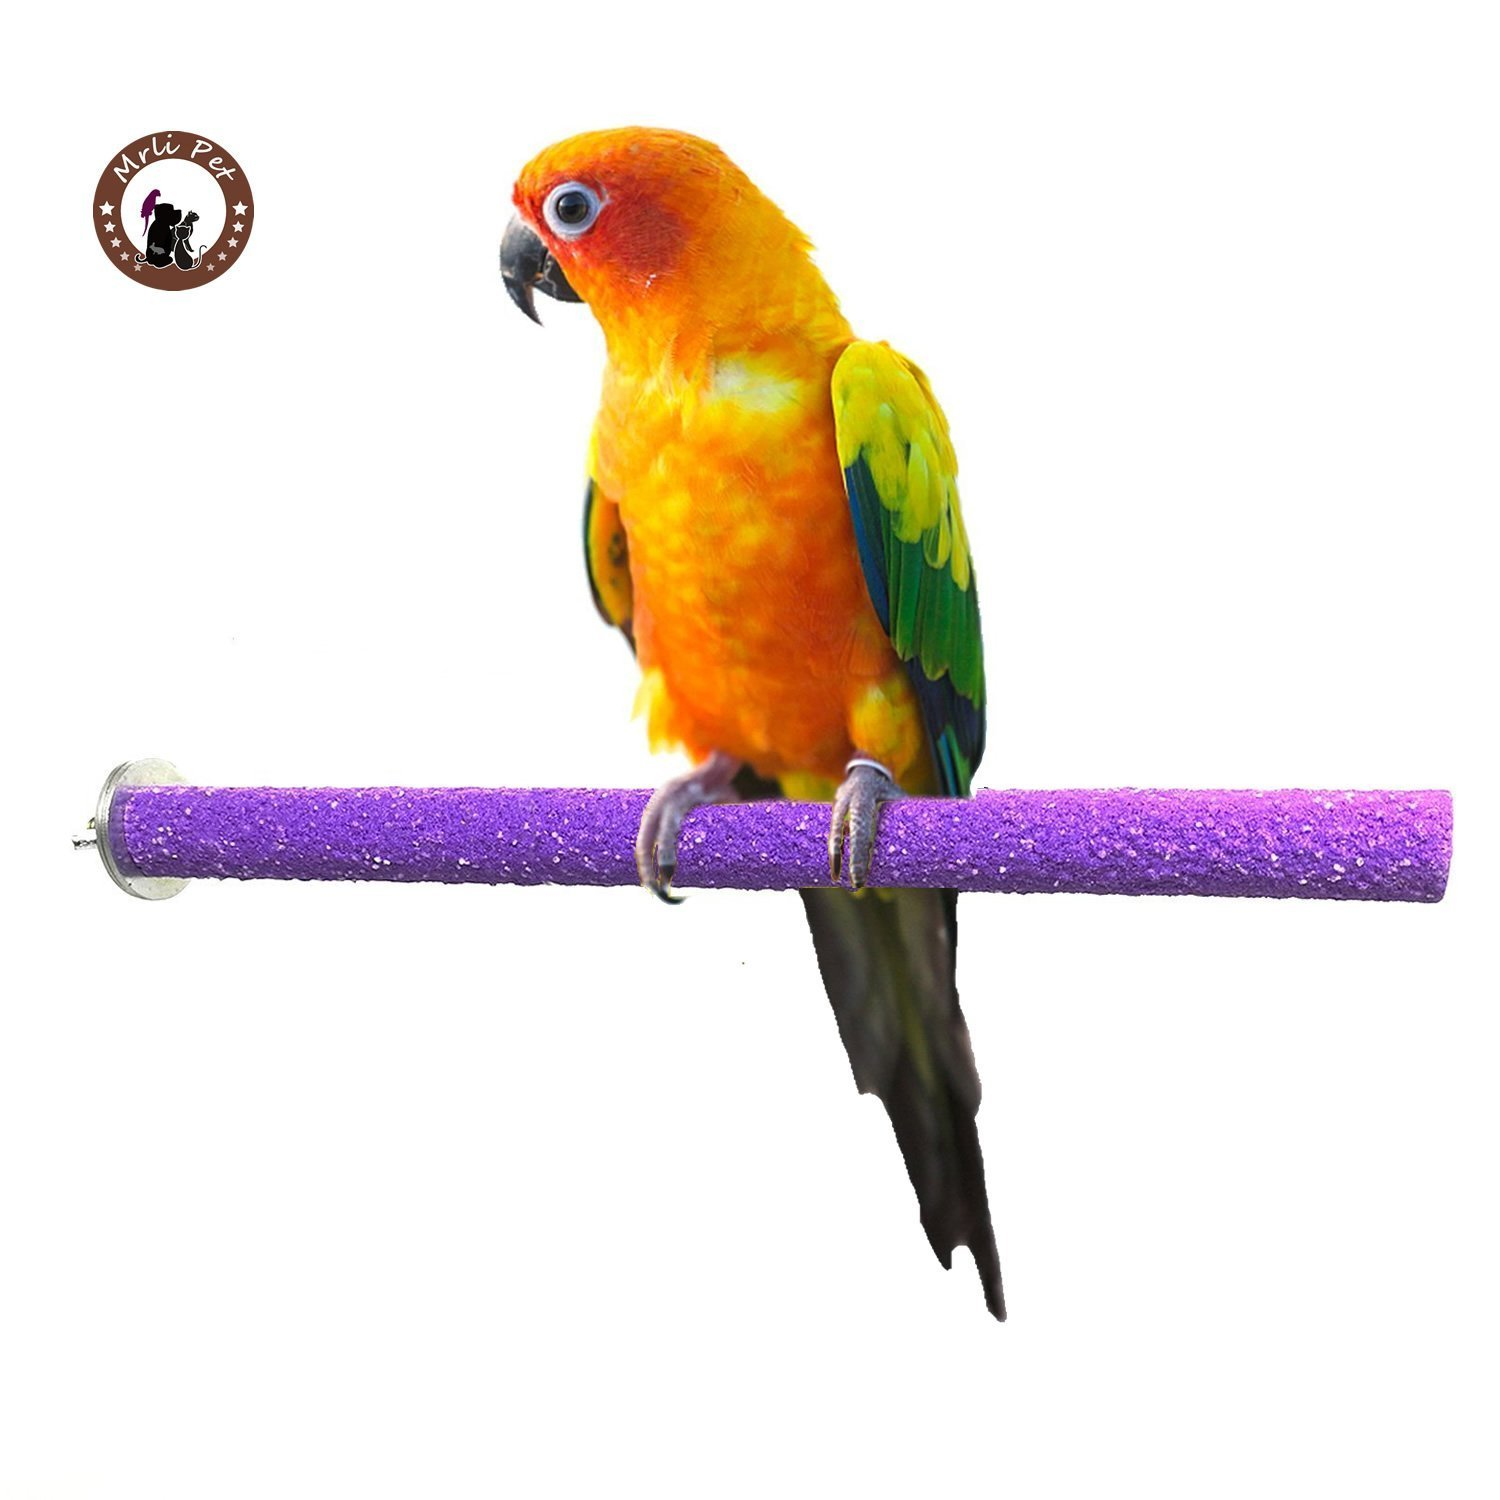 Mrli Pet Bird Safety Perch Rough-surfaced Nature Wood Stand Branch for Parrot Macaw African Greys Budgies Cockatoo Parakeet Cockatiel Conure Lovebirds Helps Keep Nails and Beaks Colors Vary (M)